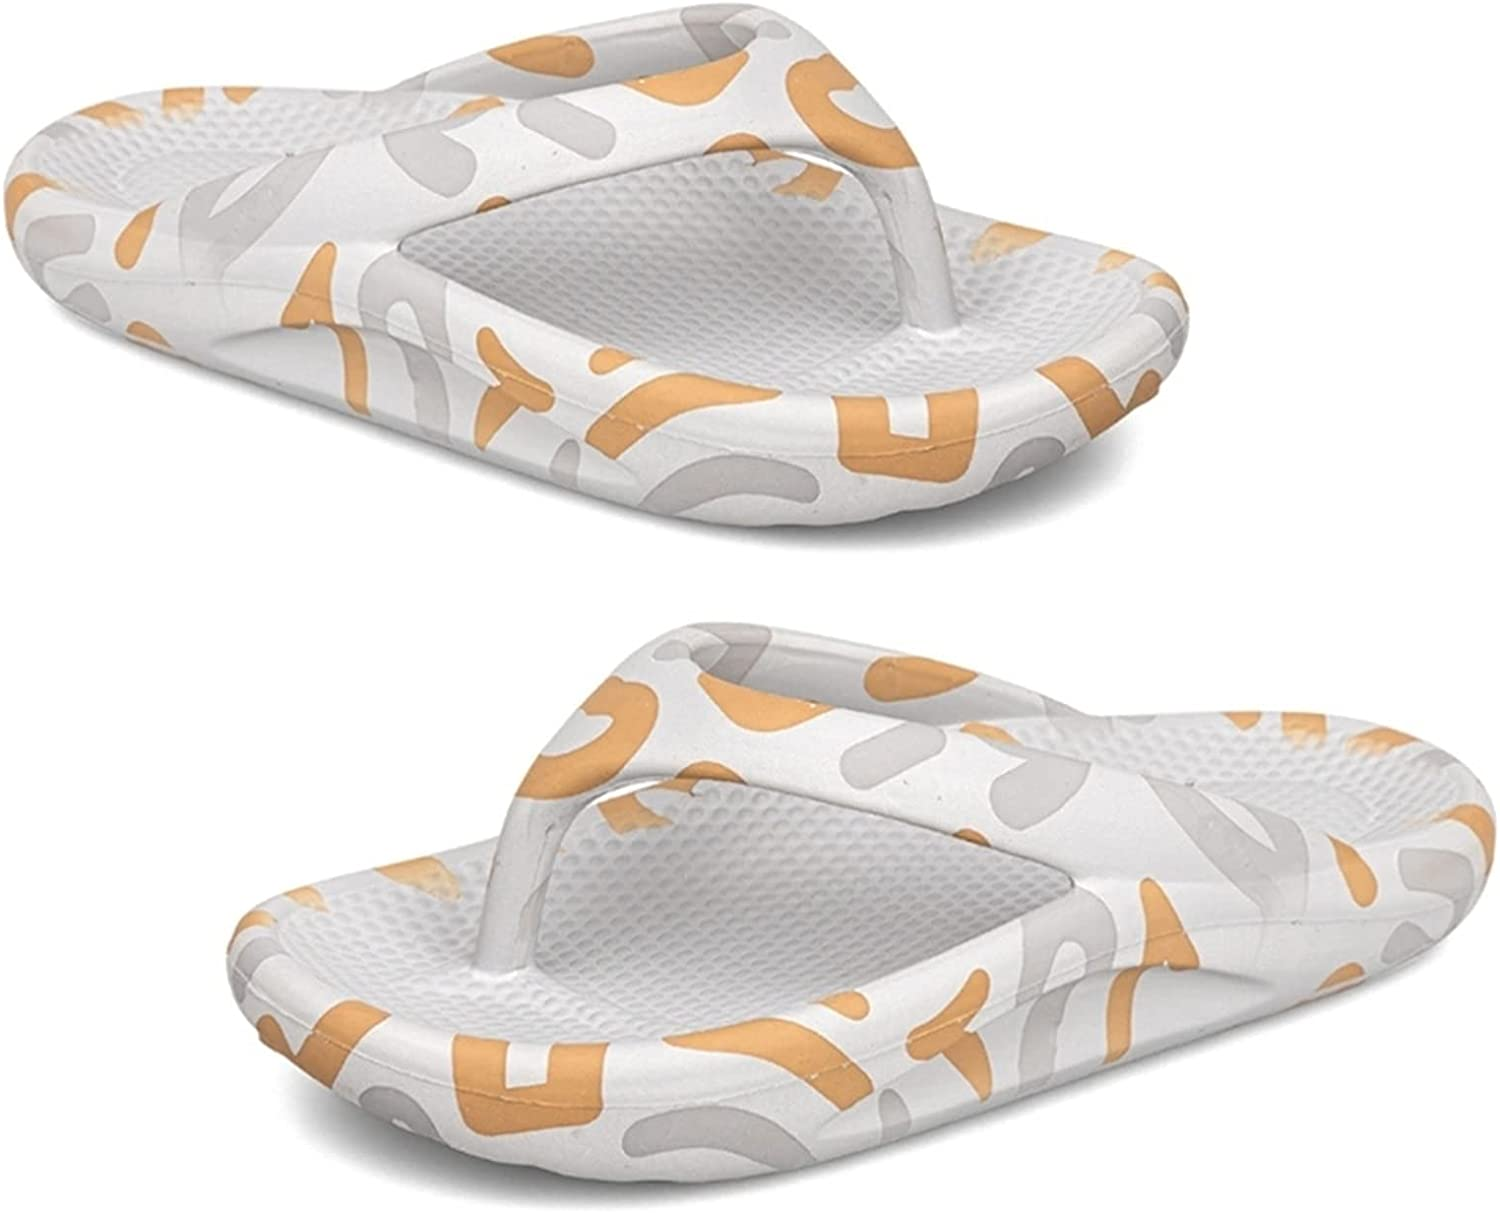 Yuncheng Women's Thick Bottom Flip Flop with Arch Support Thong Sandals Soft Bathroom Slippers Pillow Slides Outdoor Indoor (Color : Gray, Shoe Size : 8 Women/7 Men)